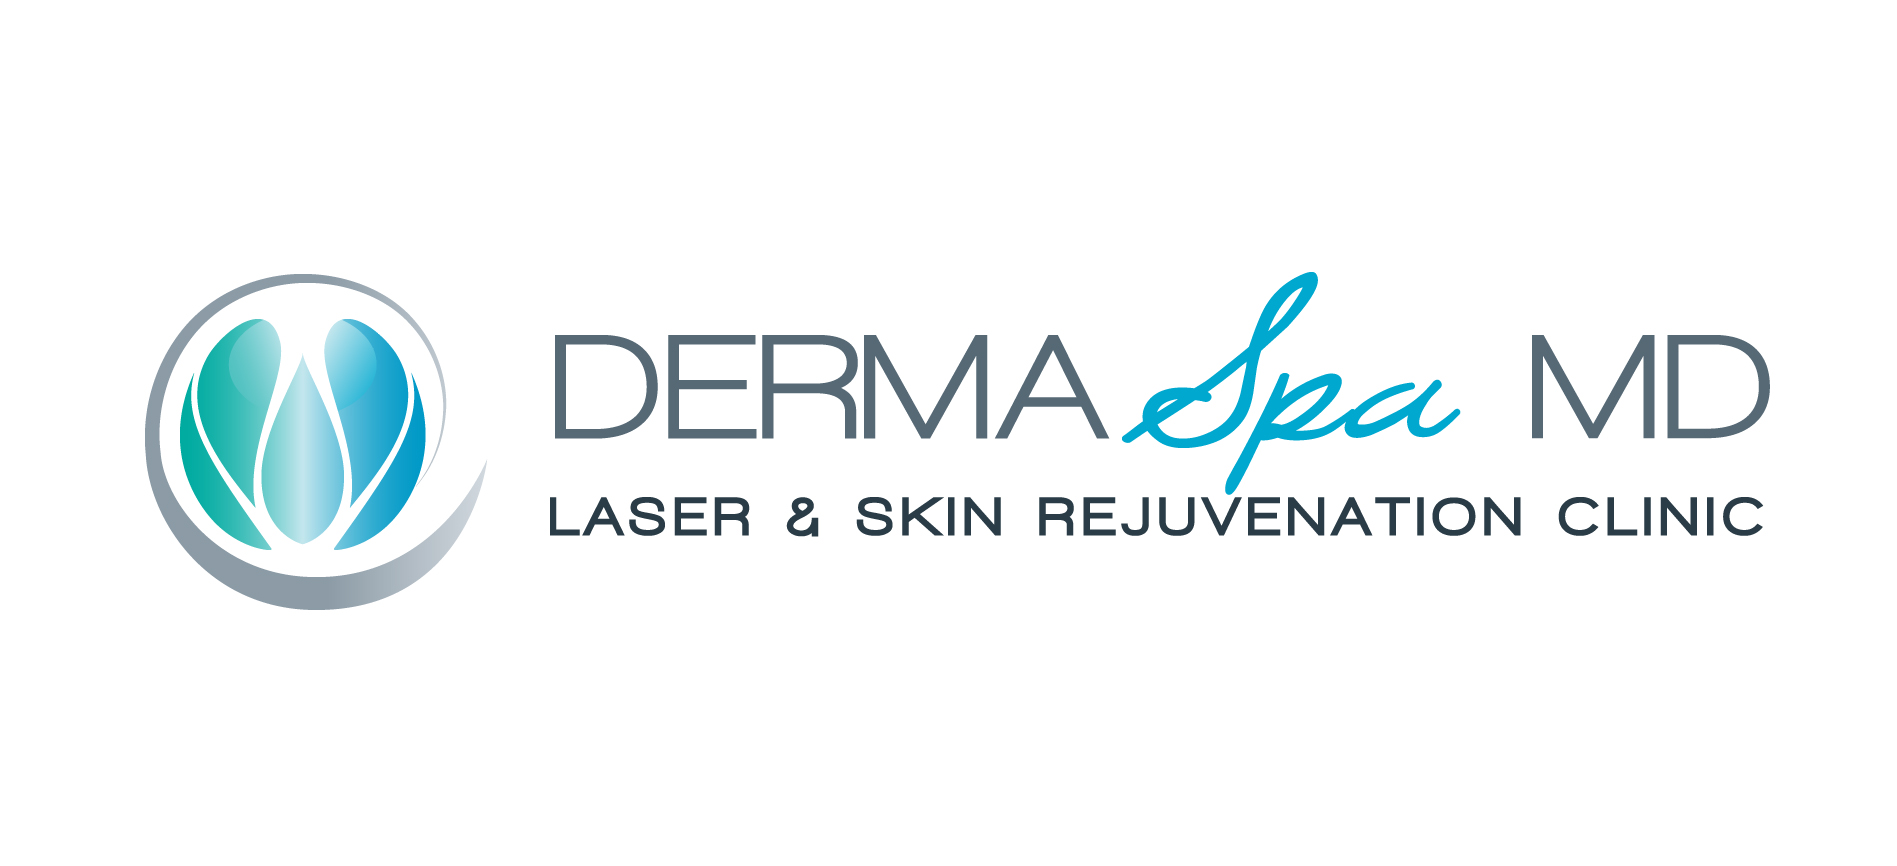 DermaSpa MD Laser & Skin Rejuvenation Clinic